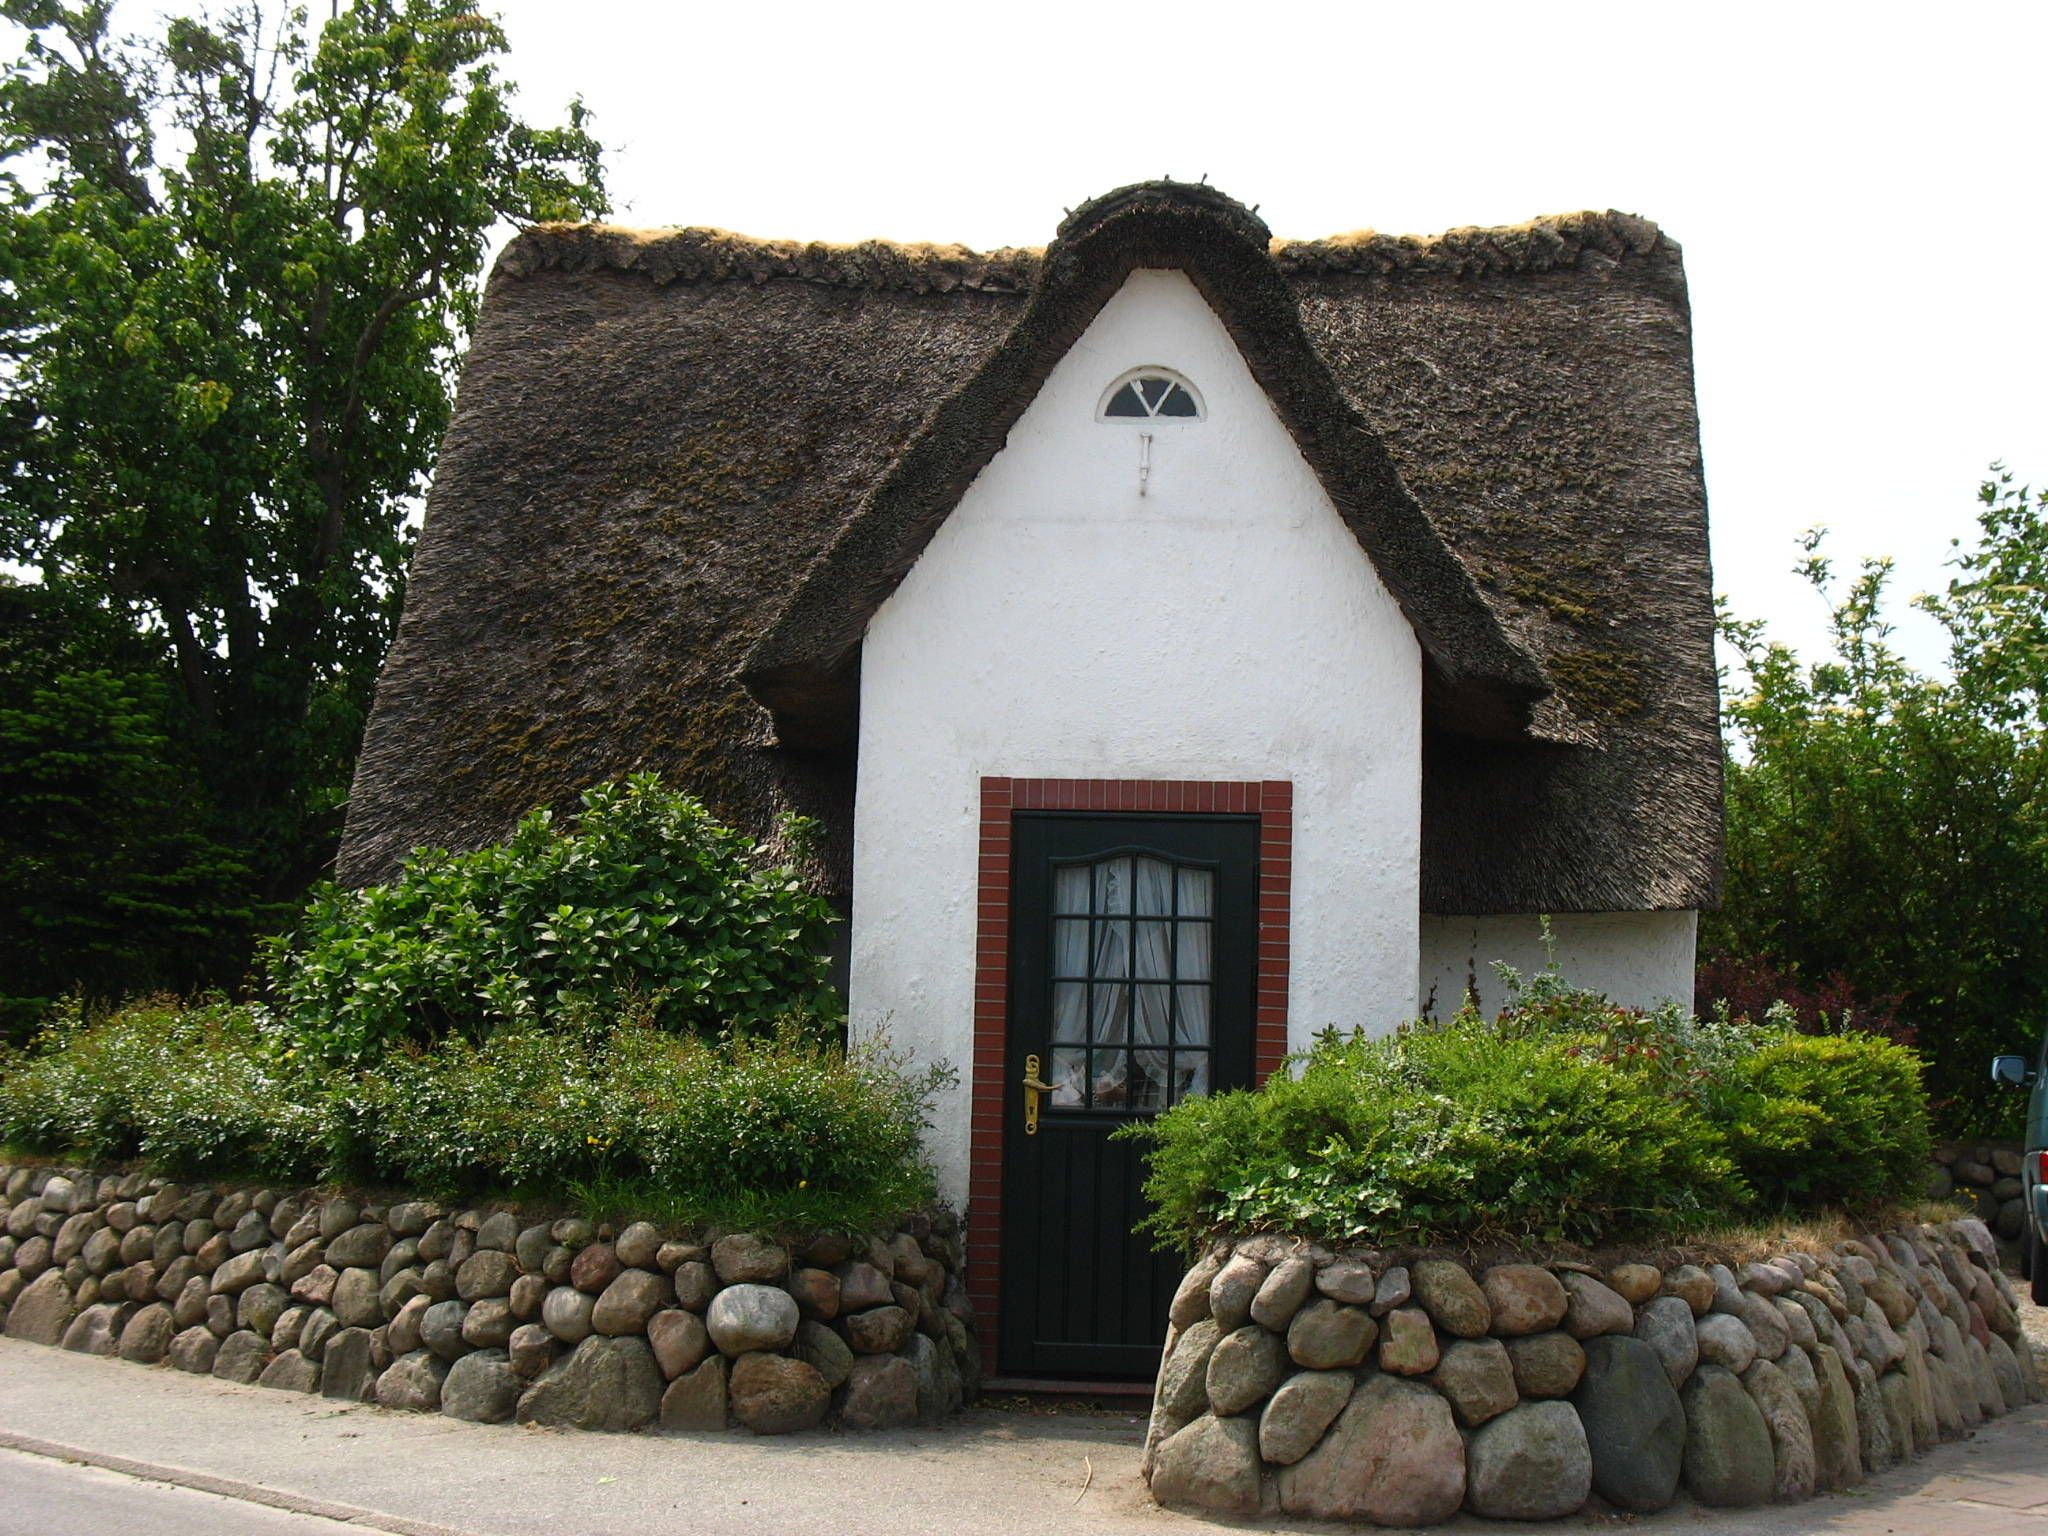 thatched roof houses on pinterest cottages fairytale